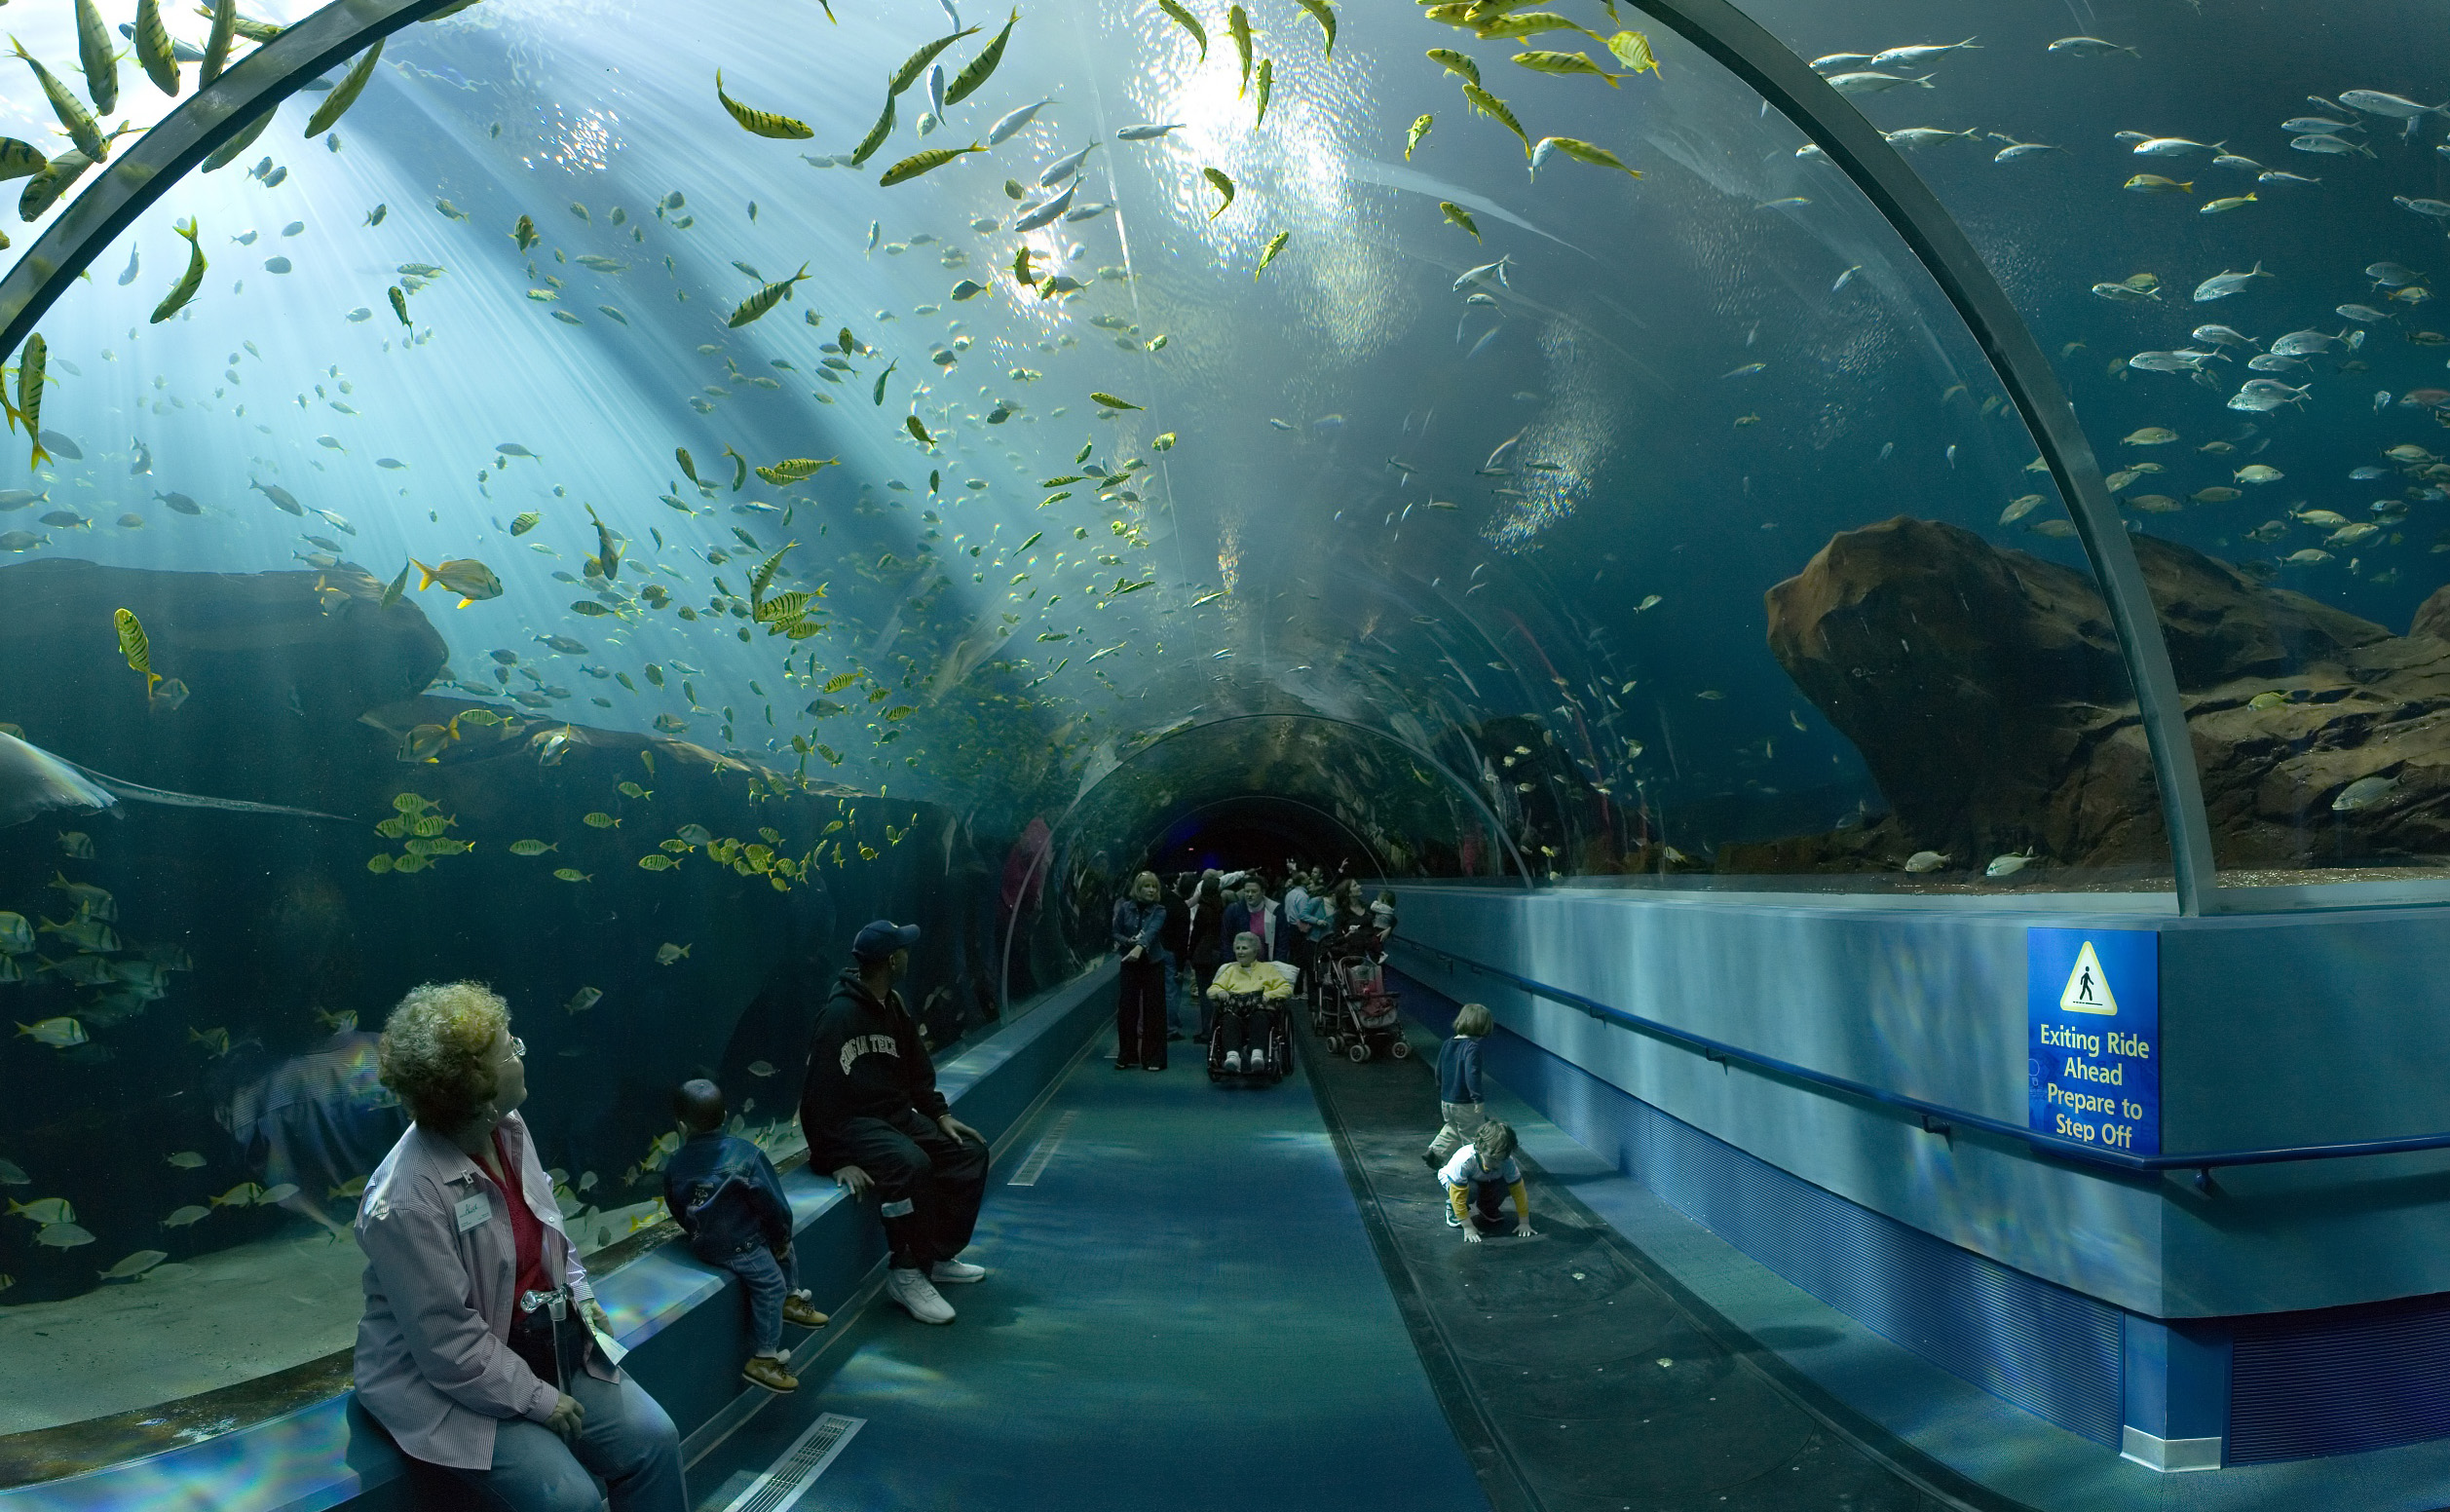 Top File:Georgia Aquarium - Ocean Voyager Tunnel Jan 2006.jpg  AN97